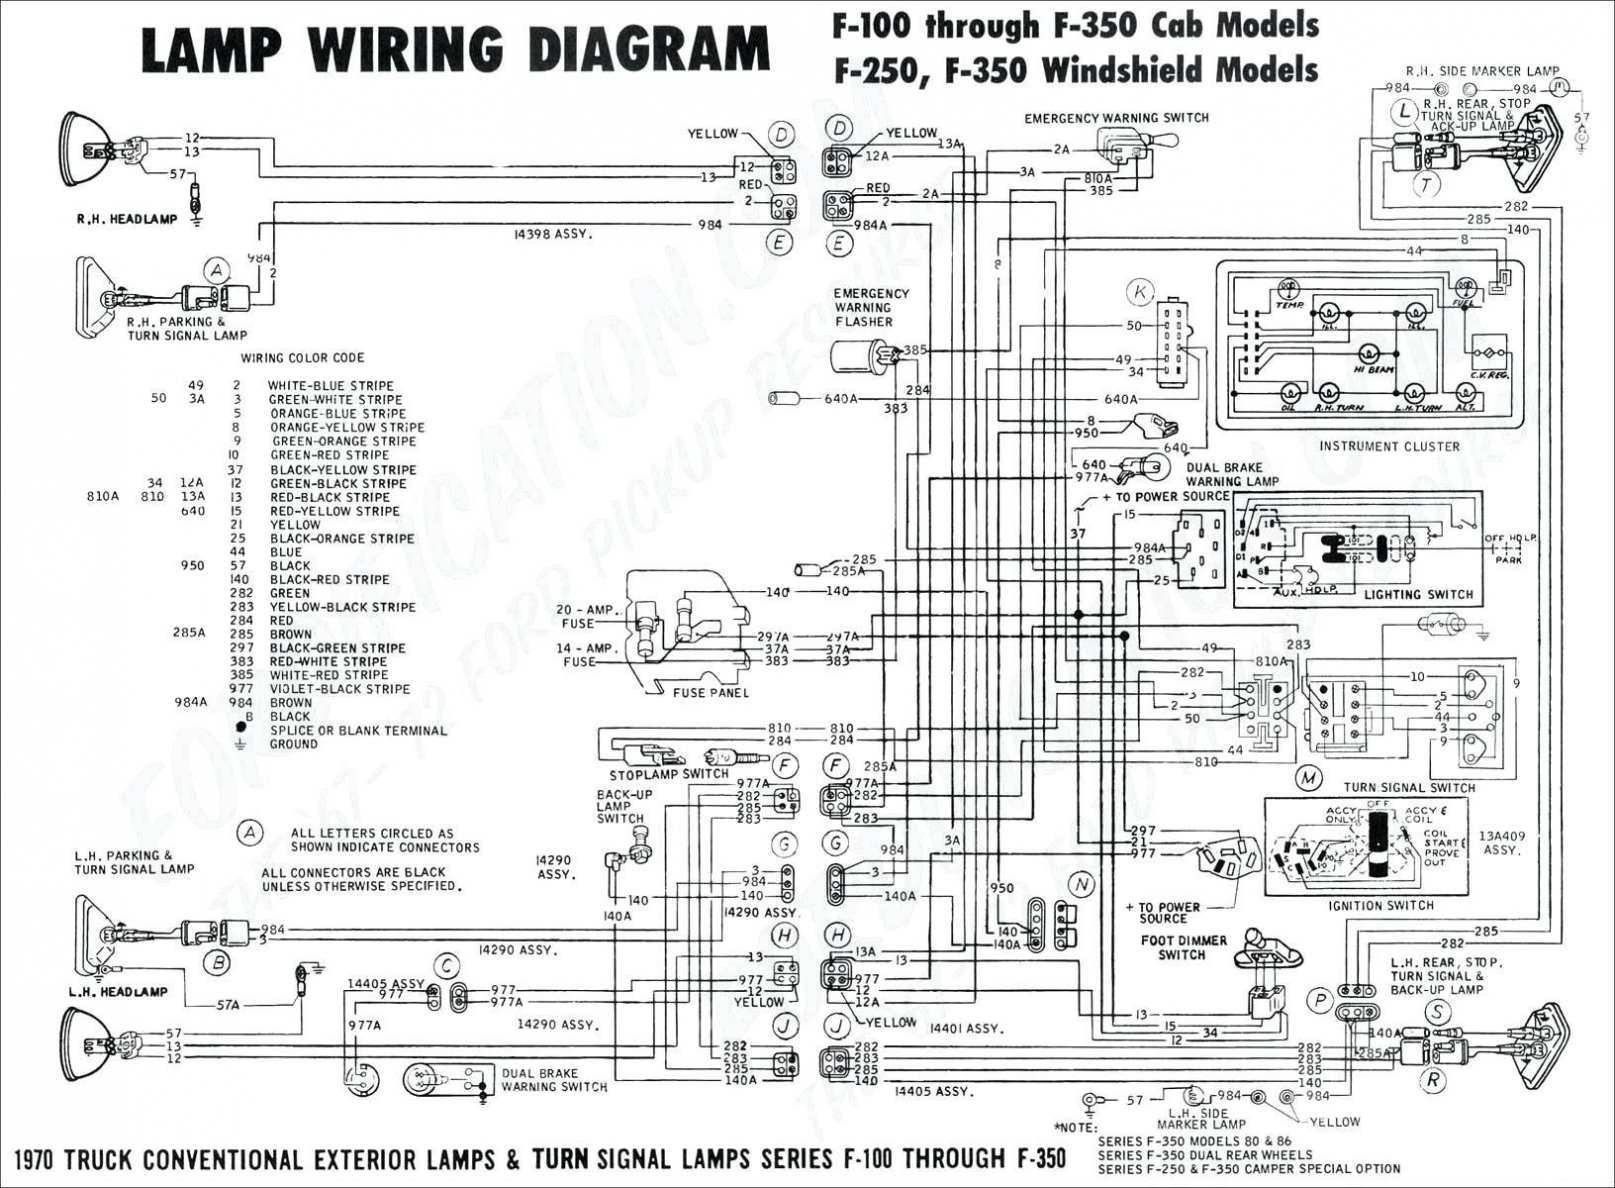 hight resolution of eurovan fuse diagram wiring diagram wiring diagram layout 1993 vw eurovan wiring diagram wiring diagram name